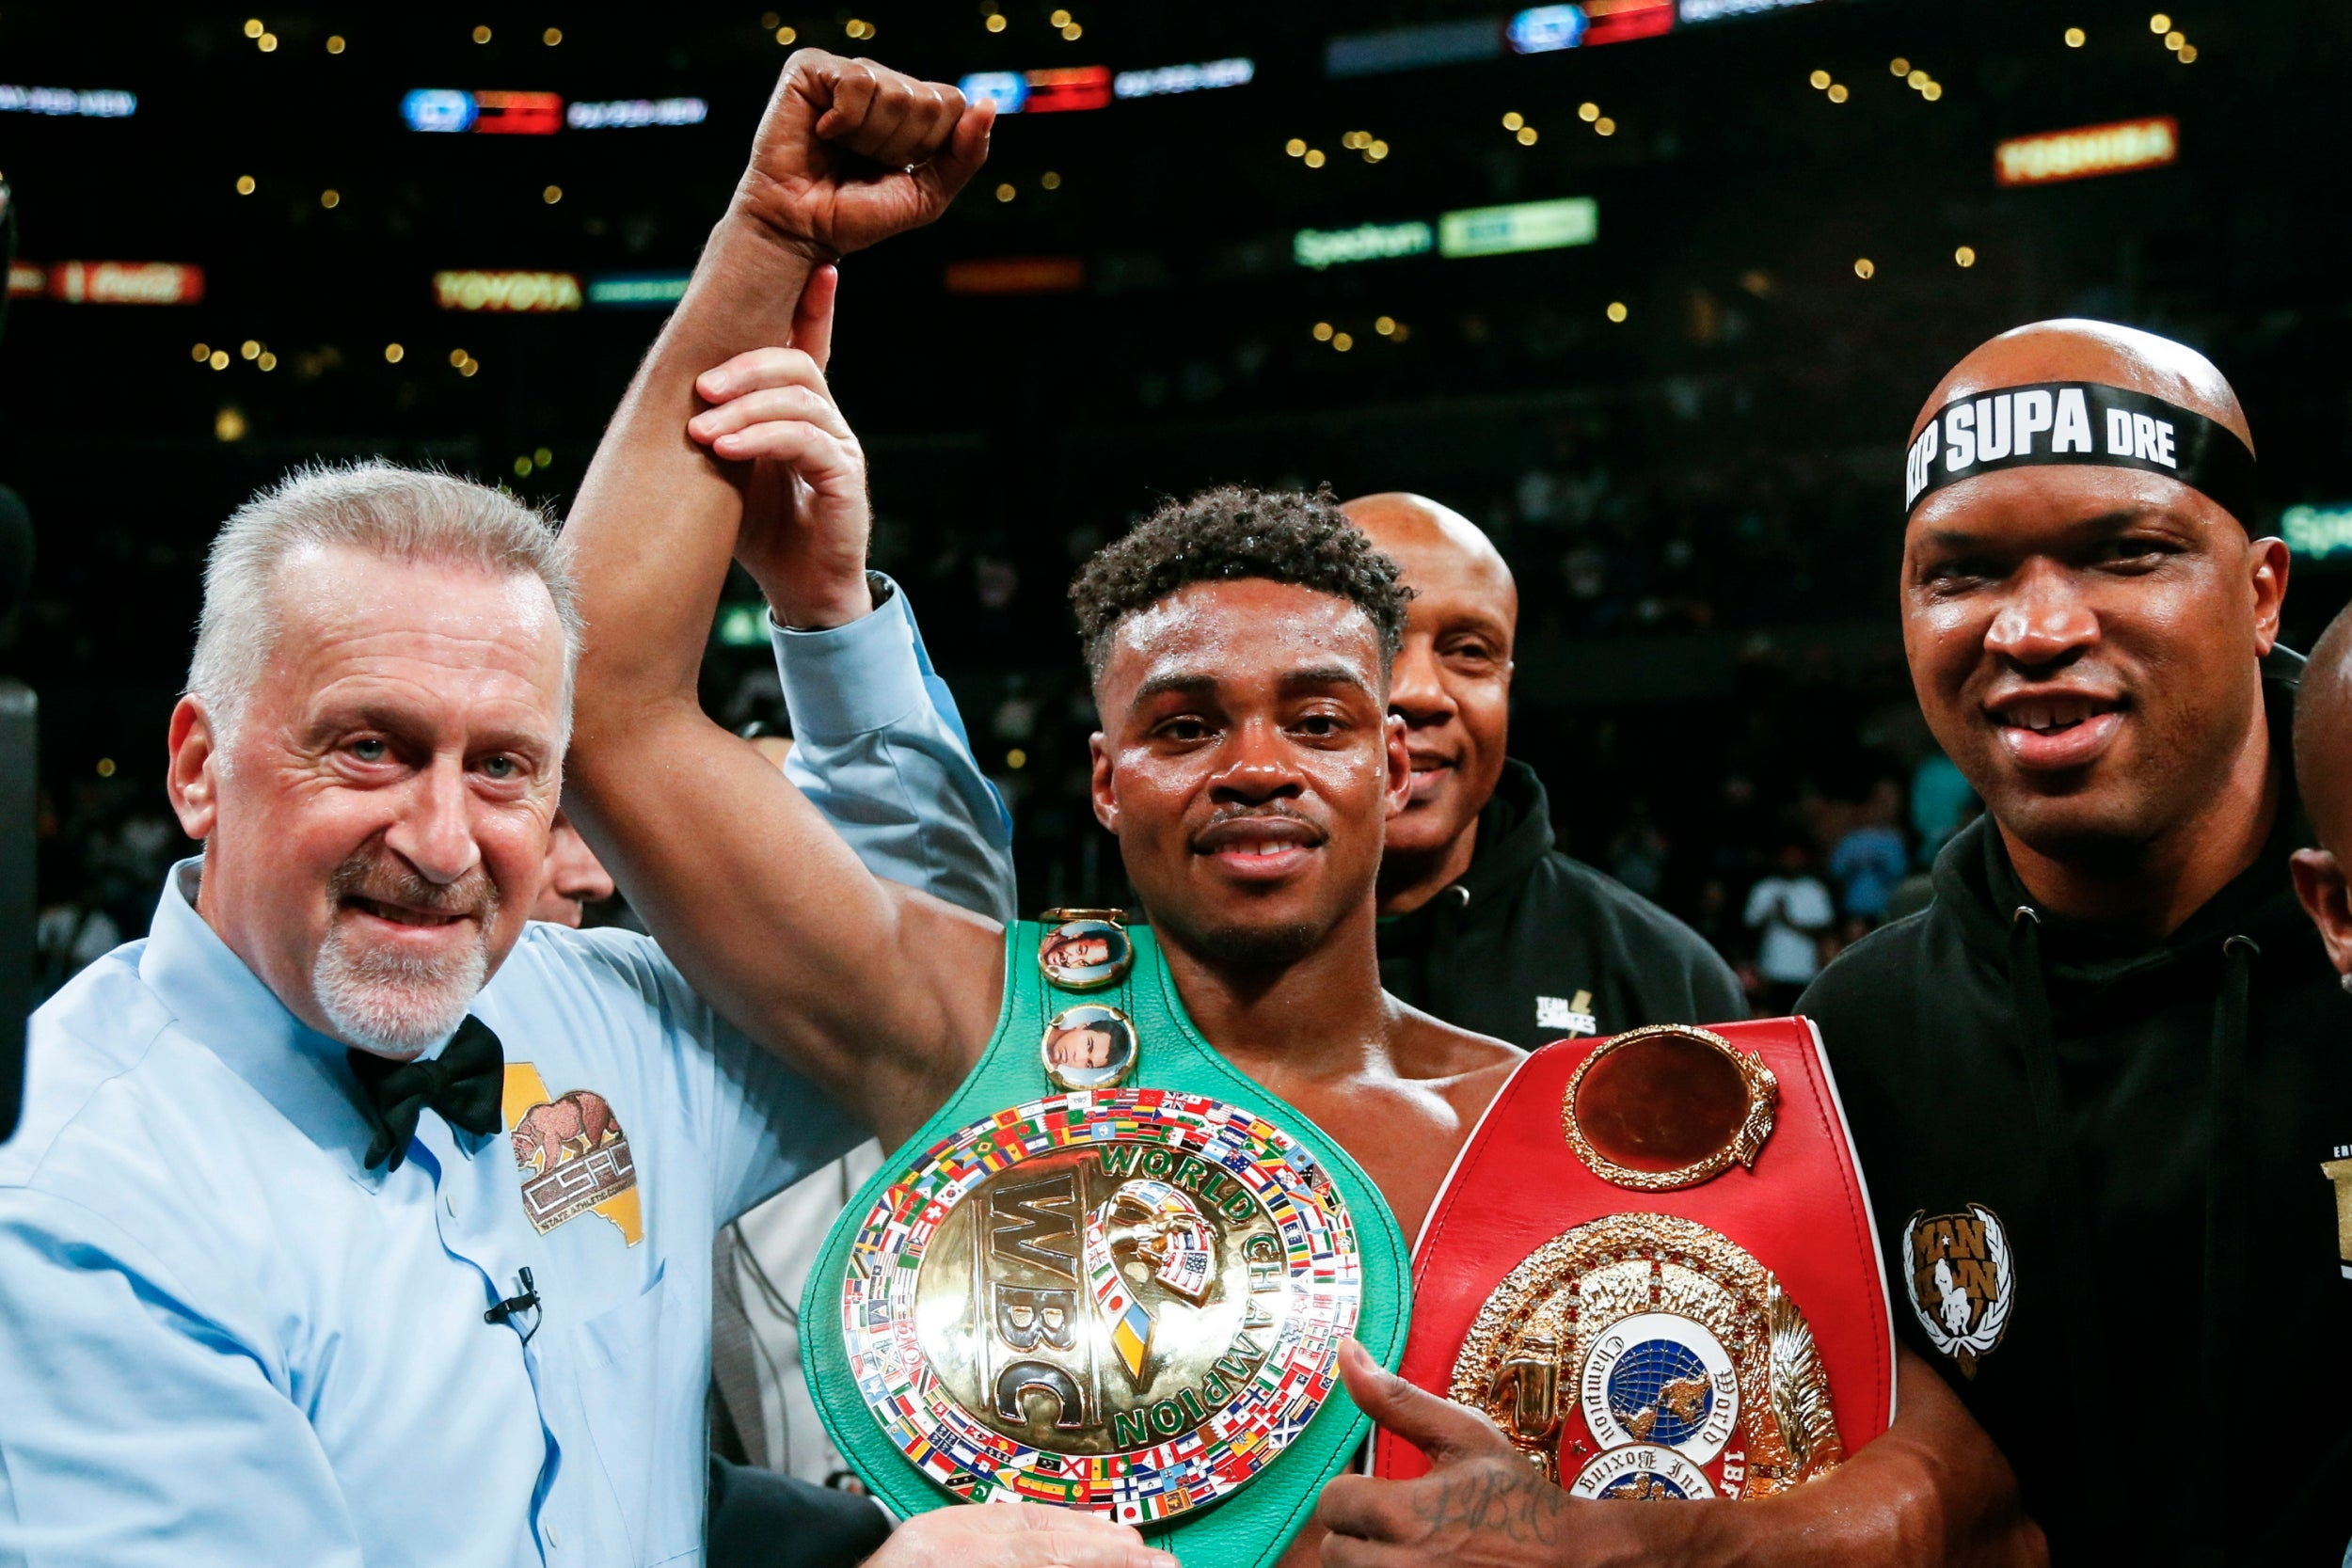 World champion boxer Errol Spence in critical condition after being ejected from Ferrari in horror car crash